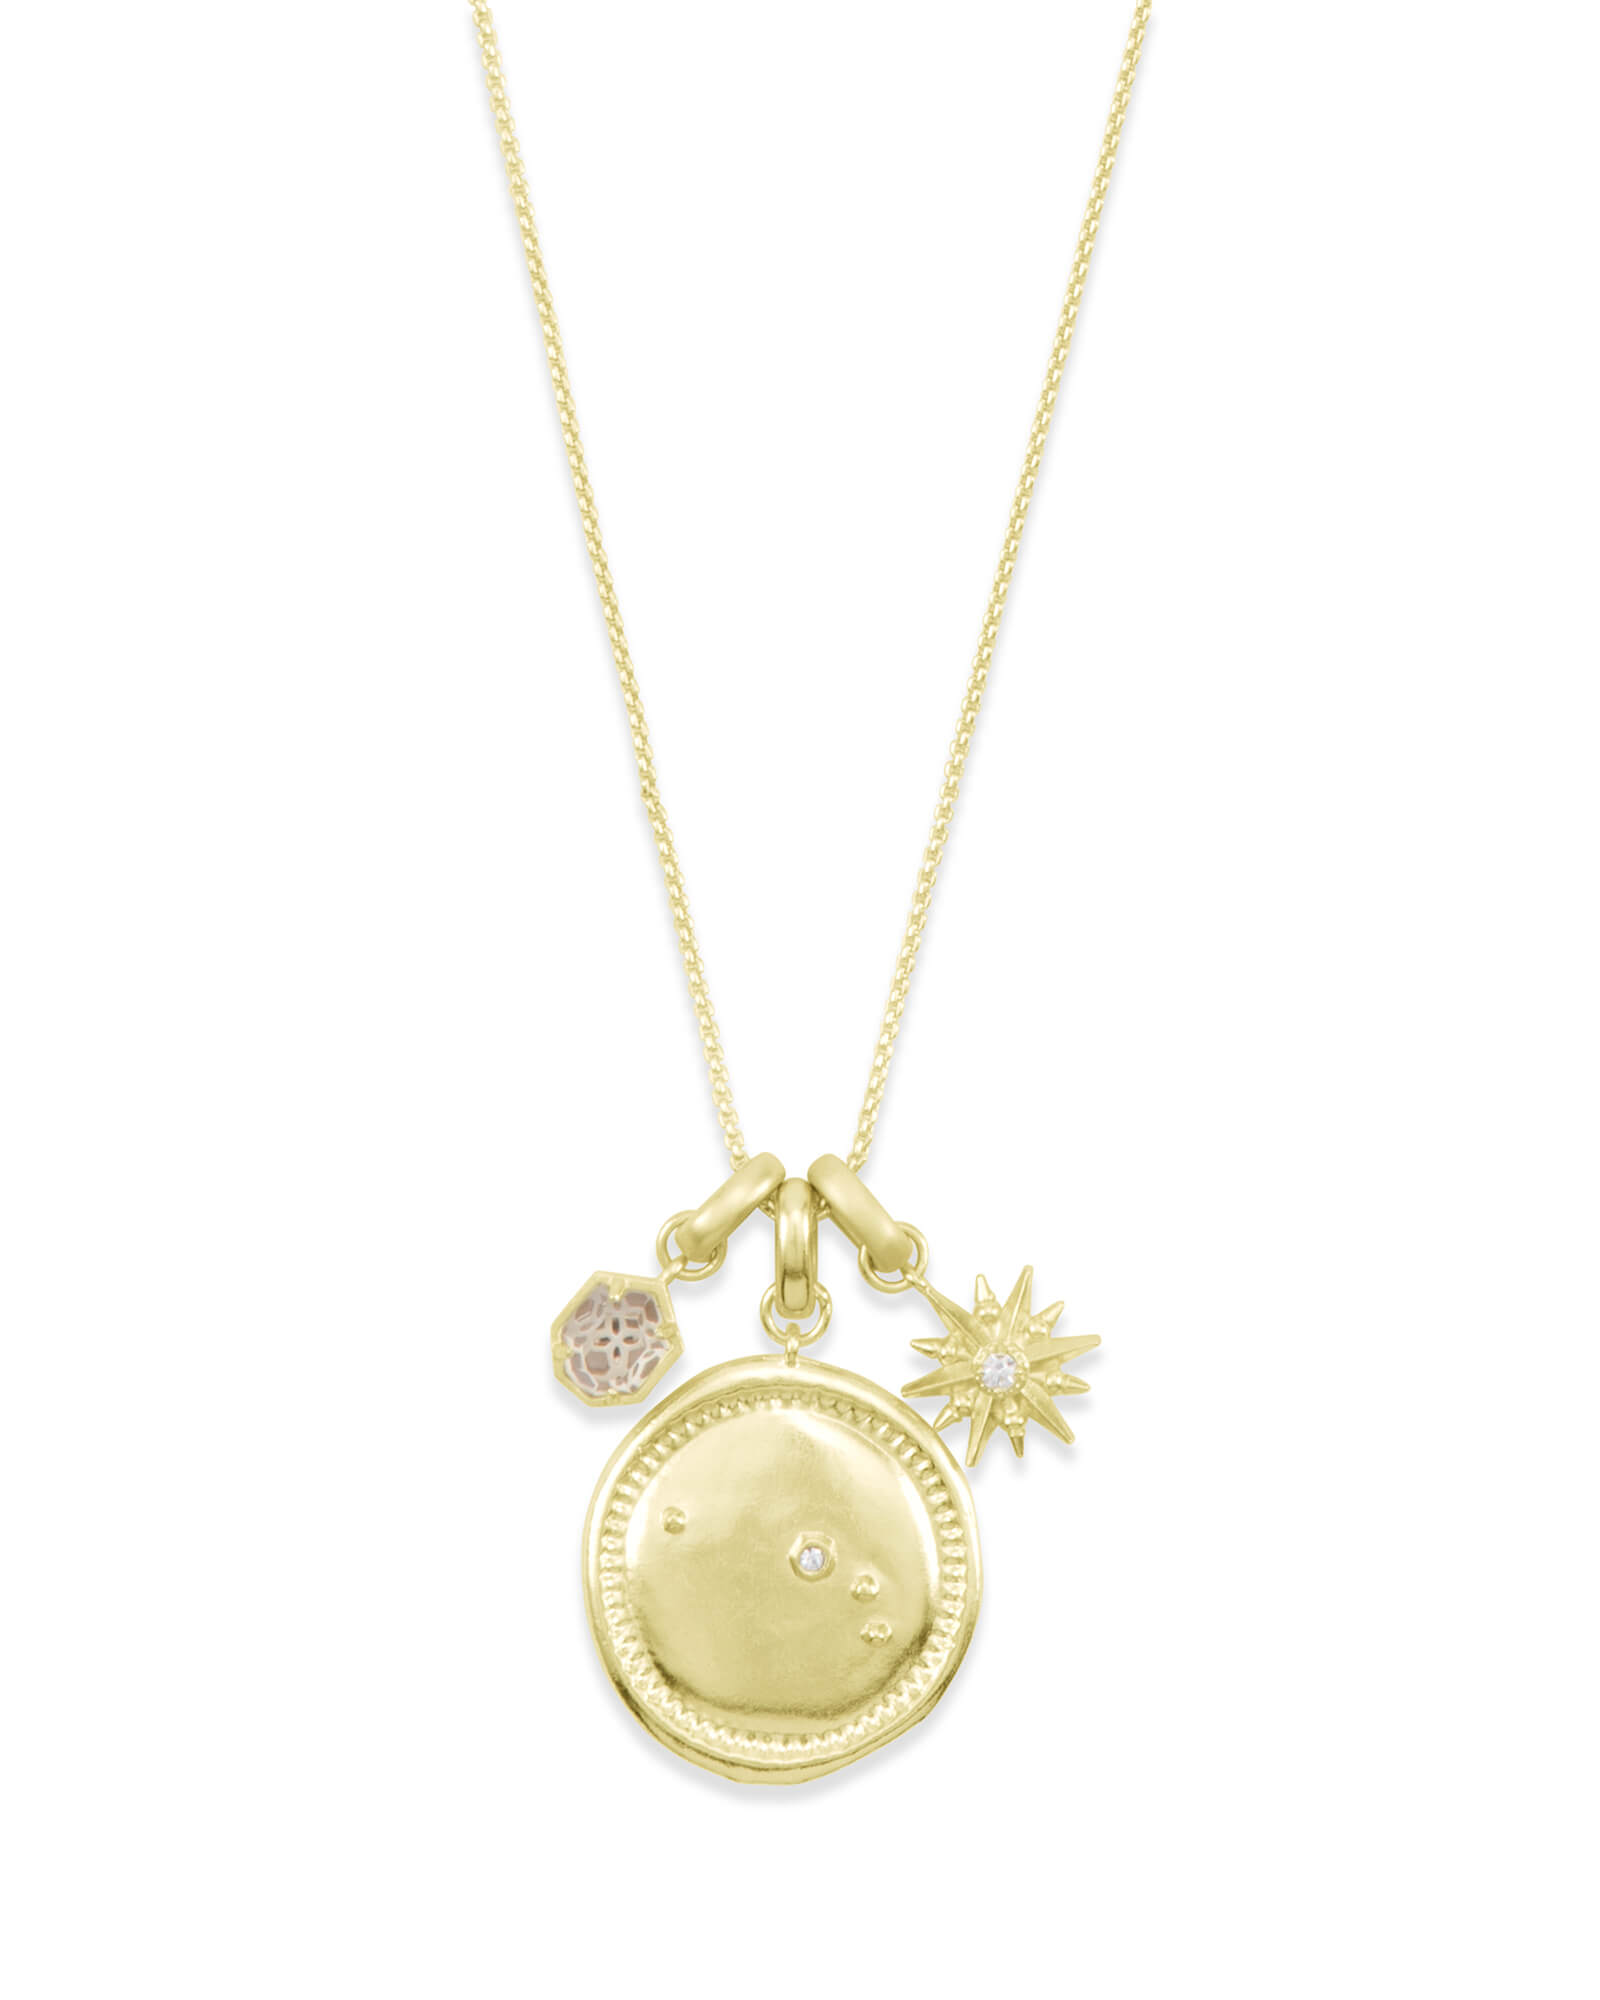 April Aries Charm Necklace Set in Gold